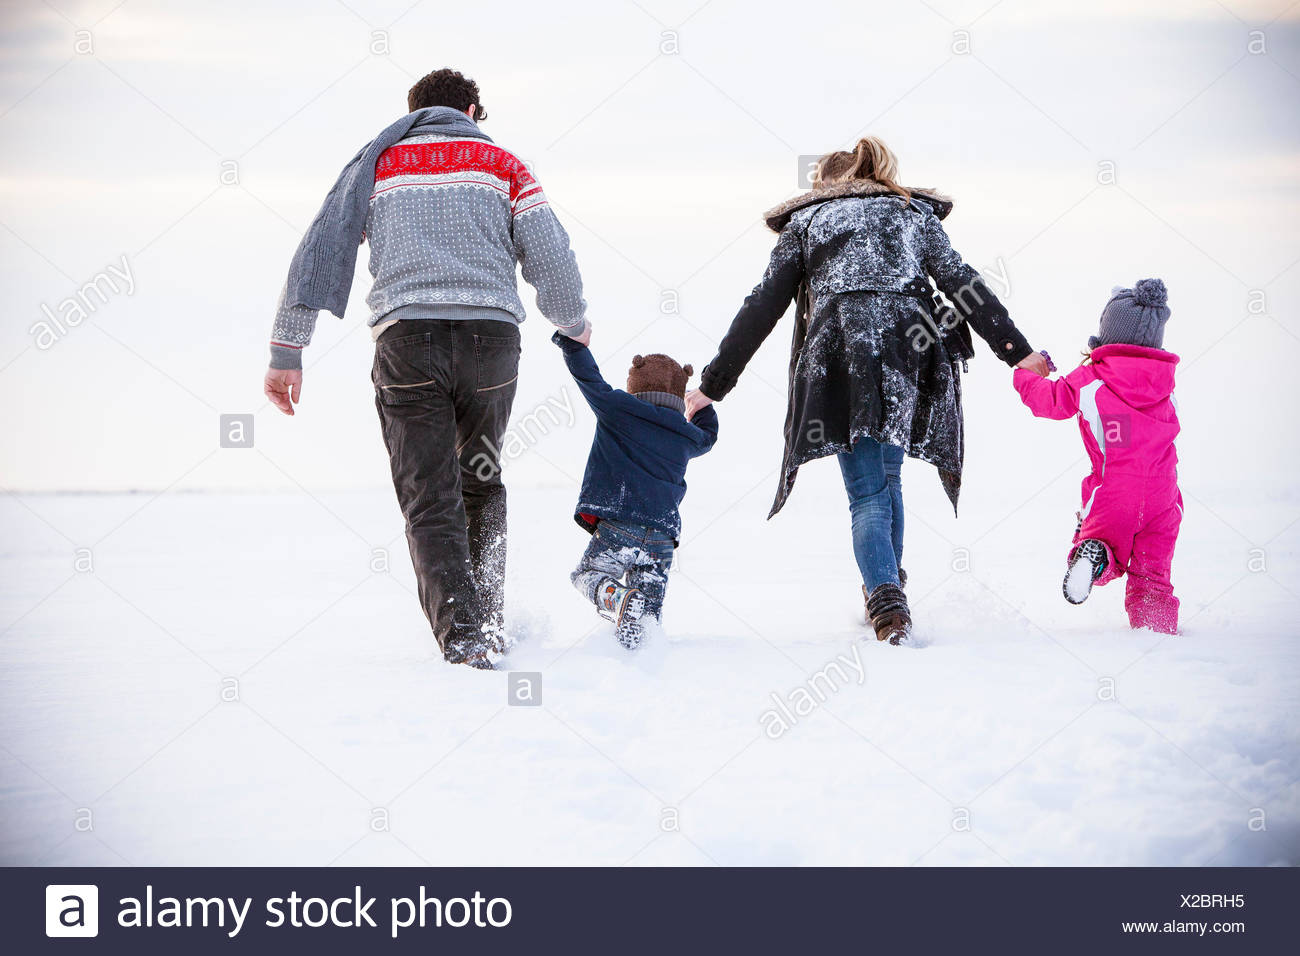 Family walking in snow - Stock Image